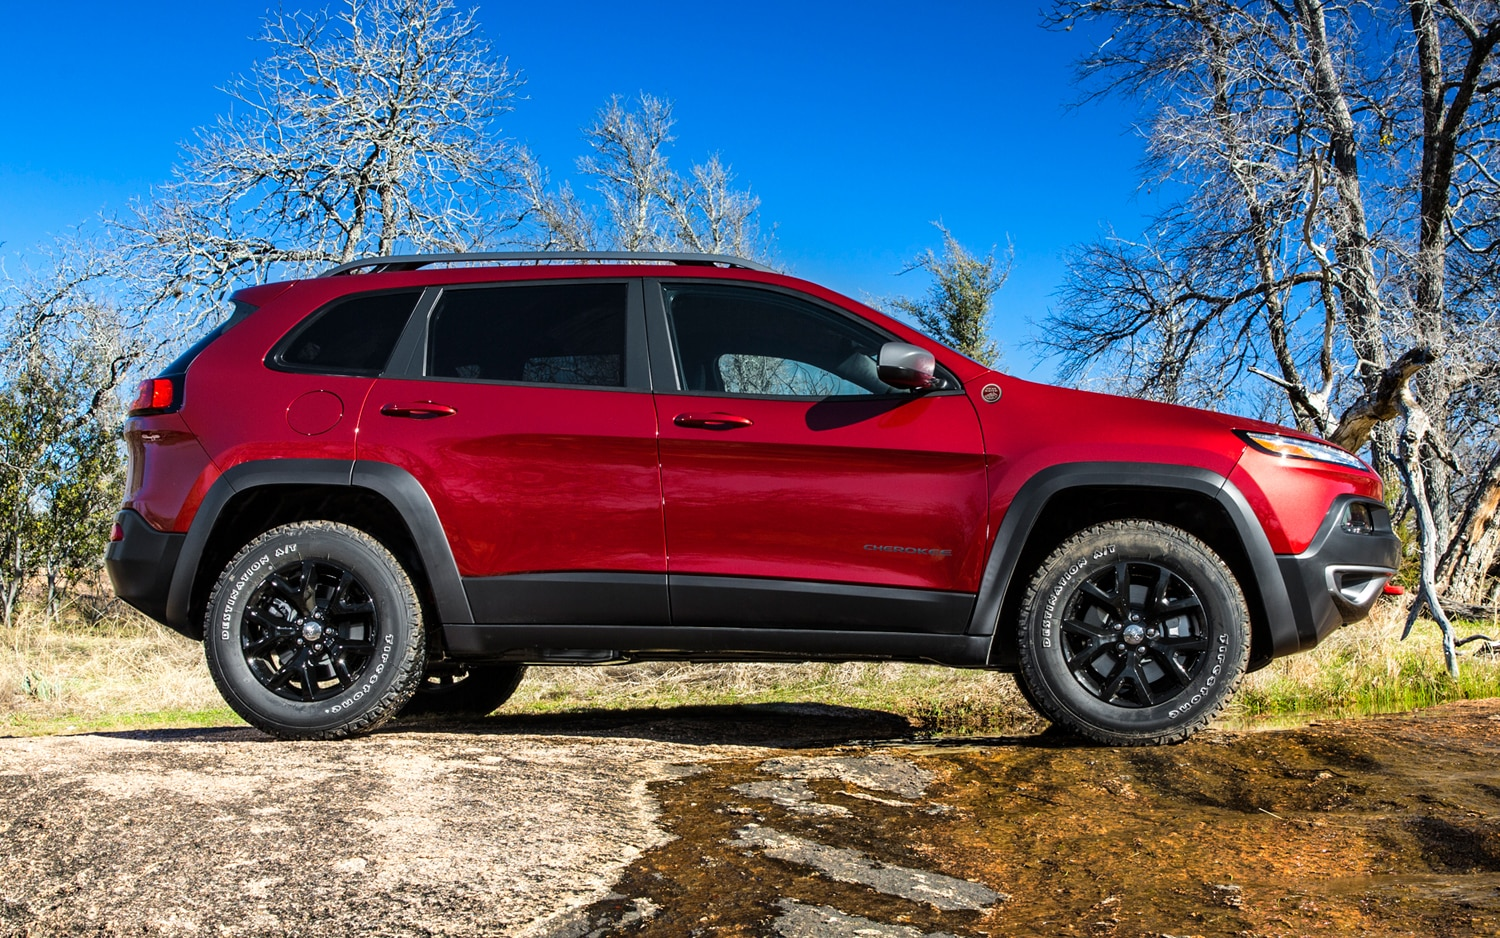 2014 Jeep Cherokee Trailhawk side